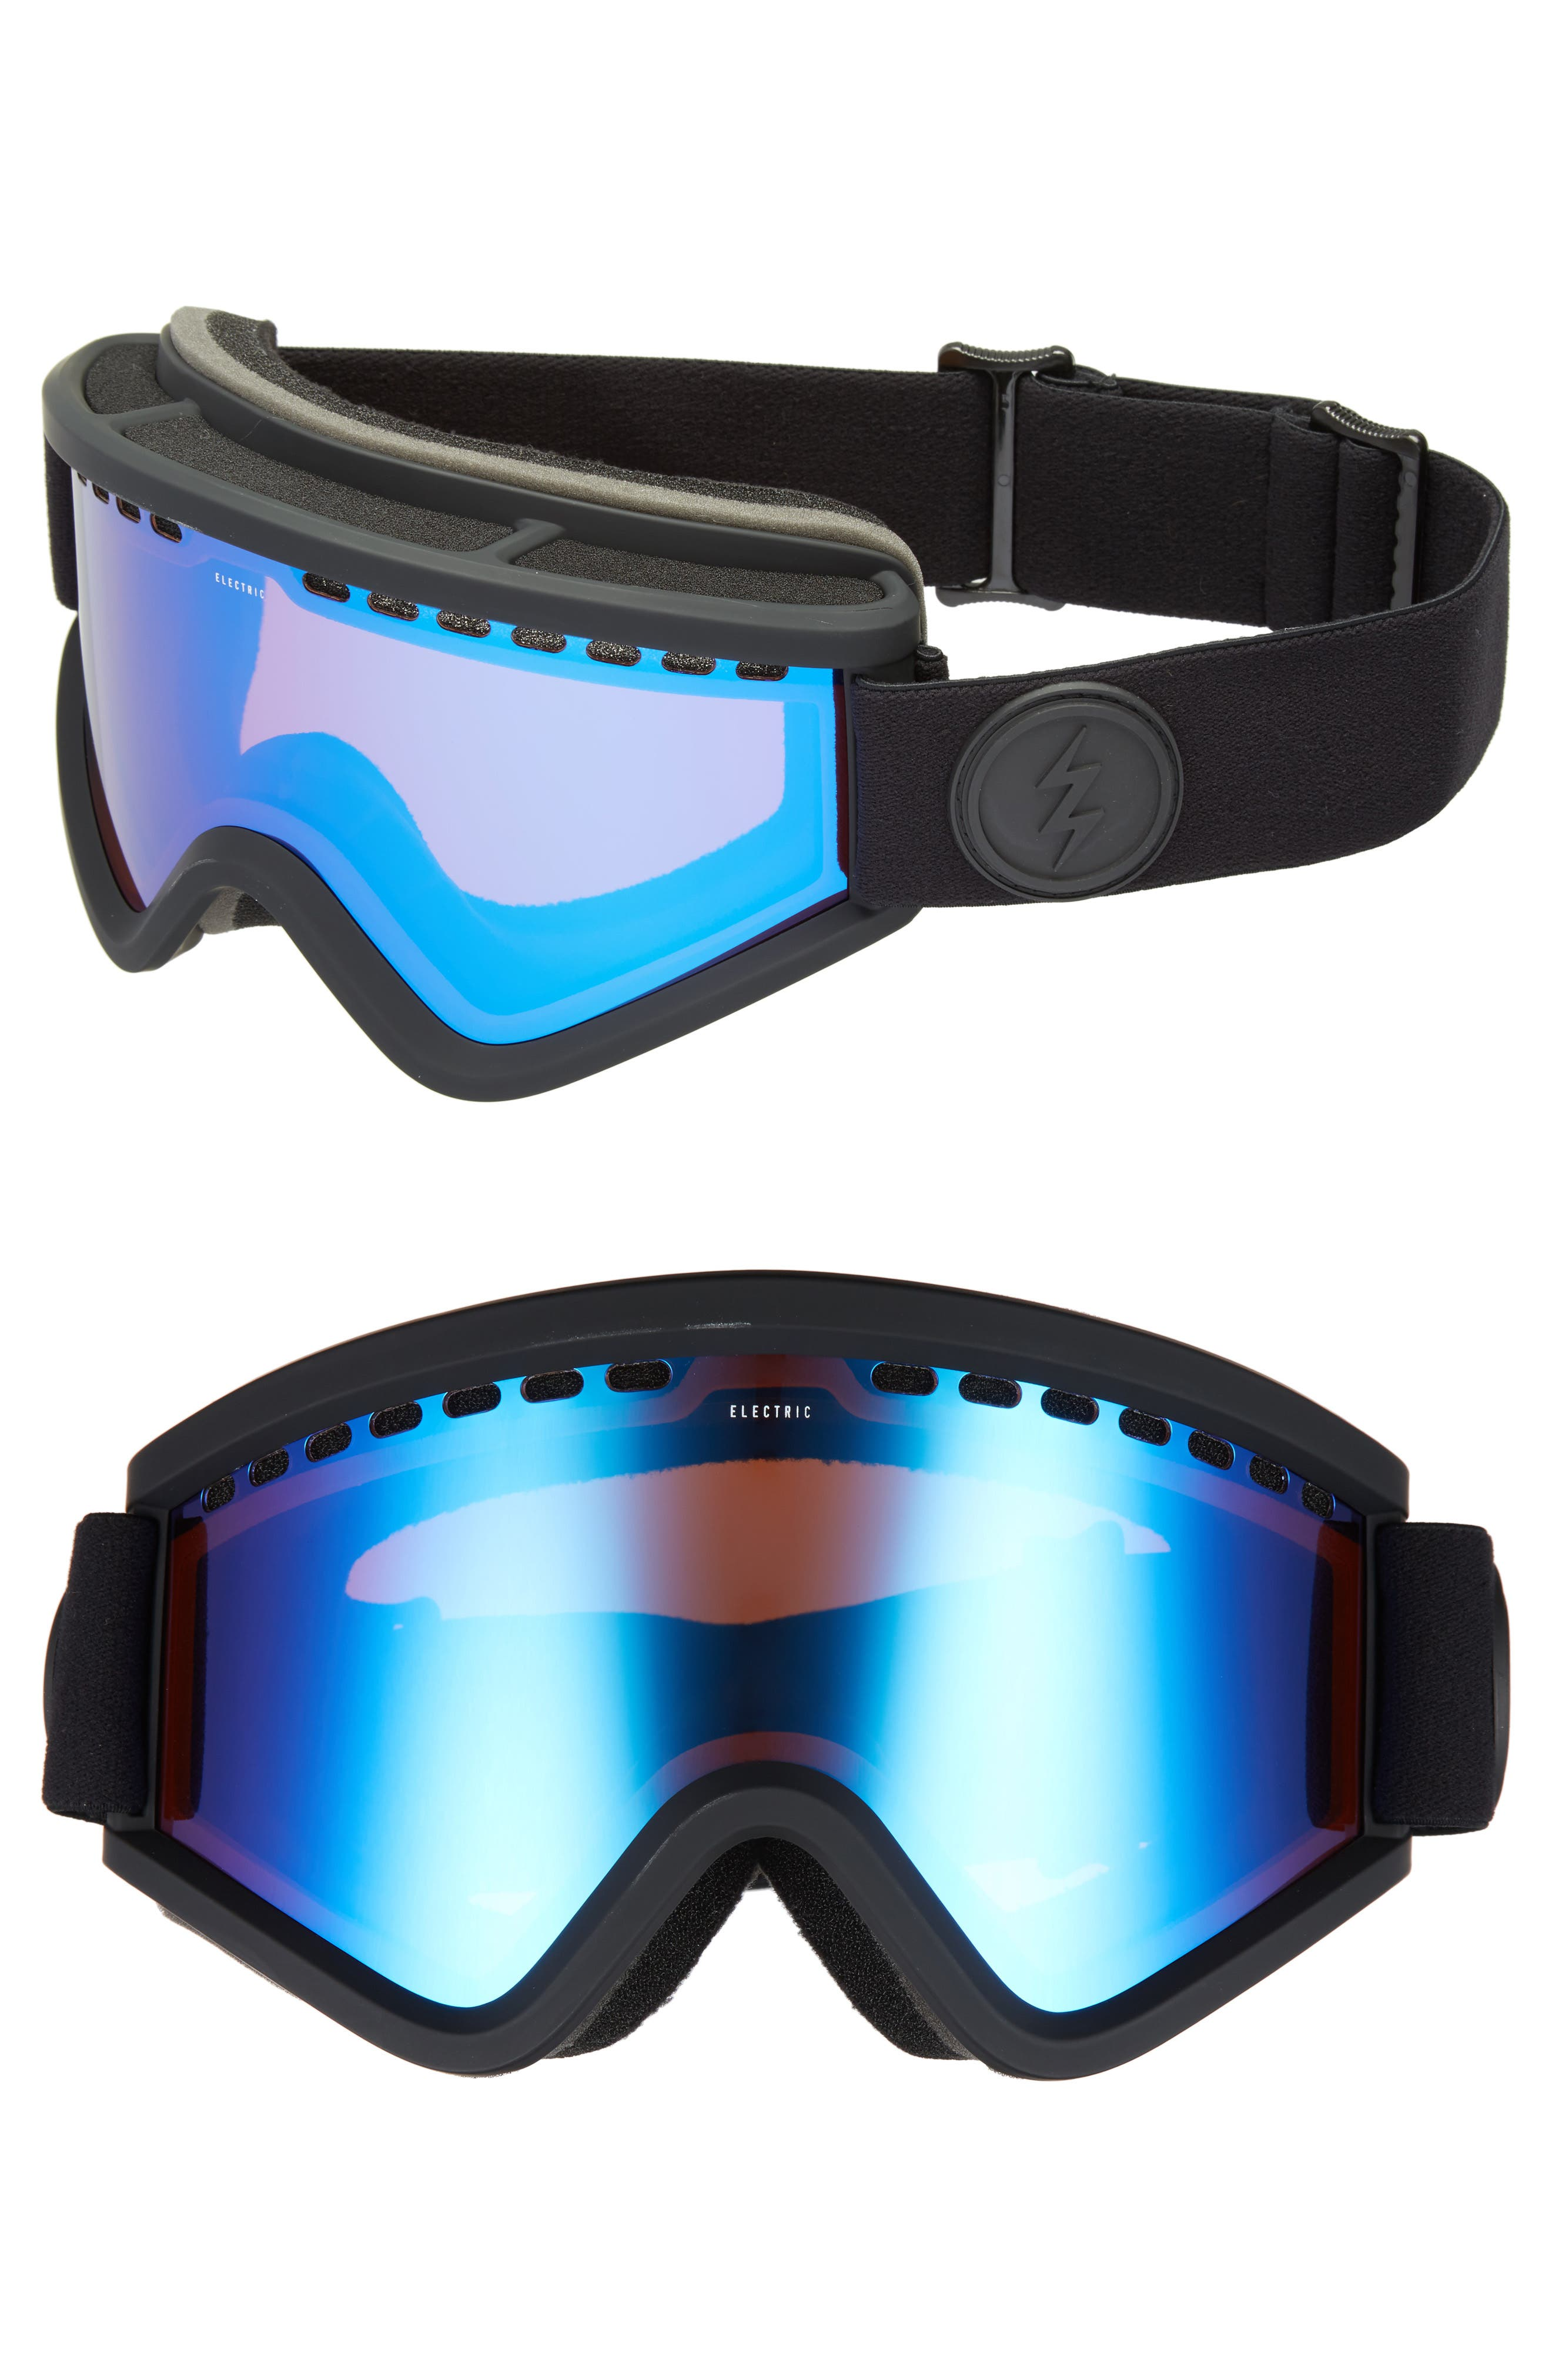 Main Image - ELECTRIC EGV Snow Goggles